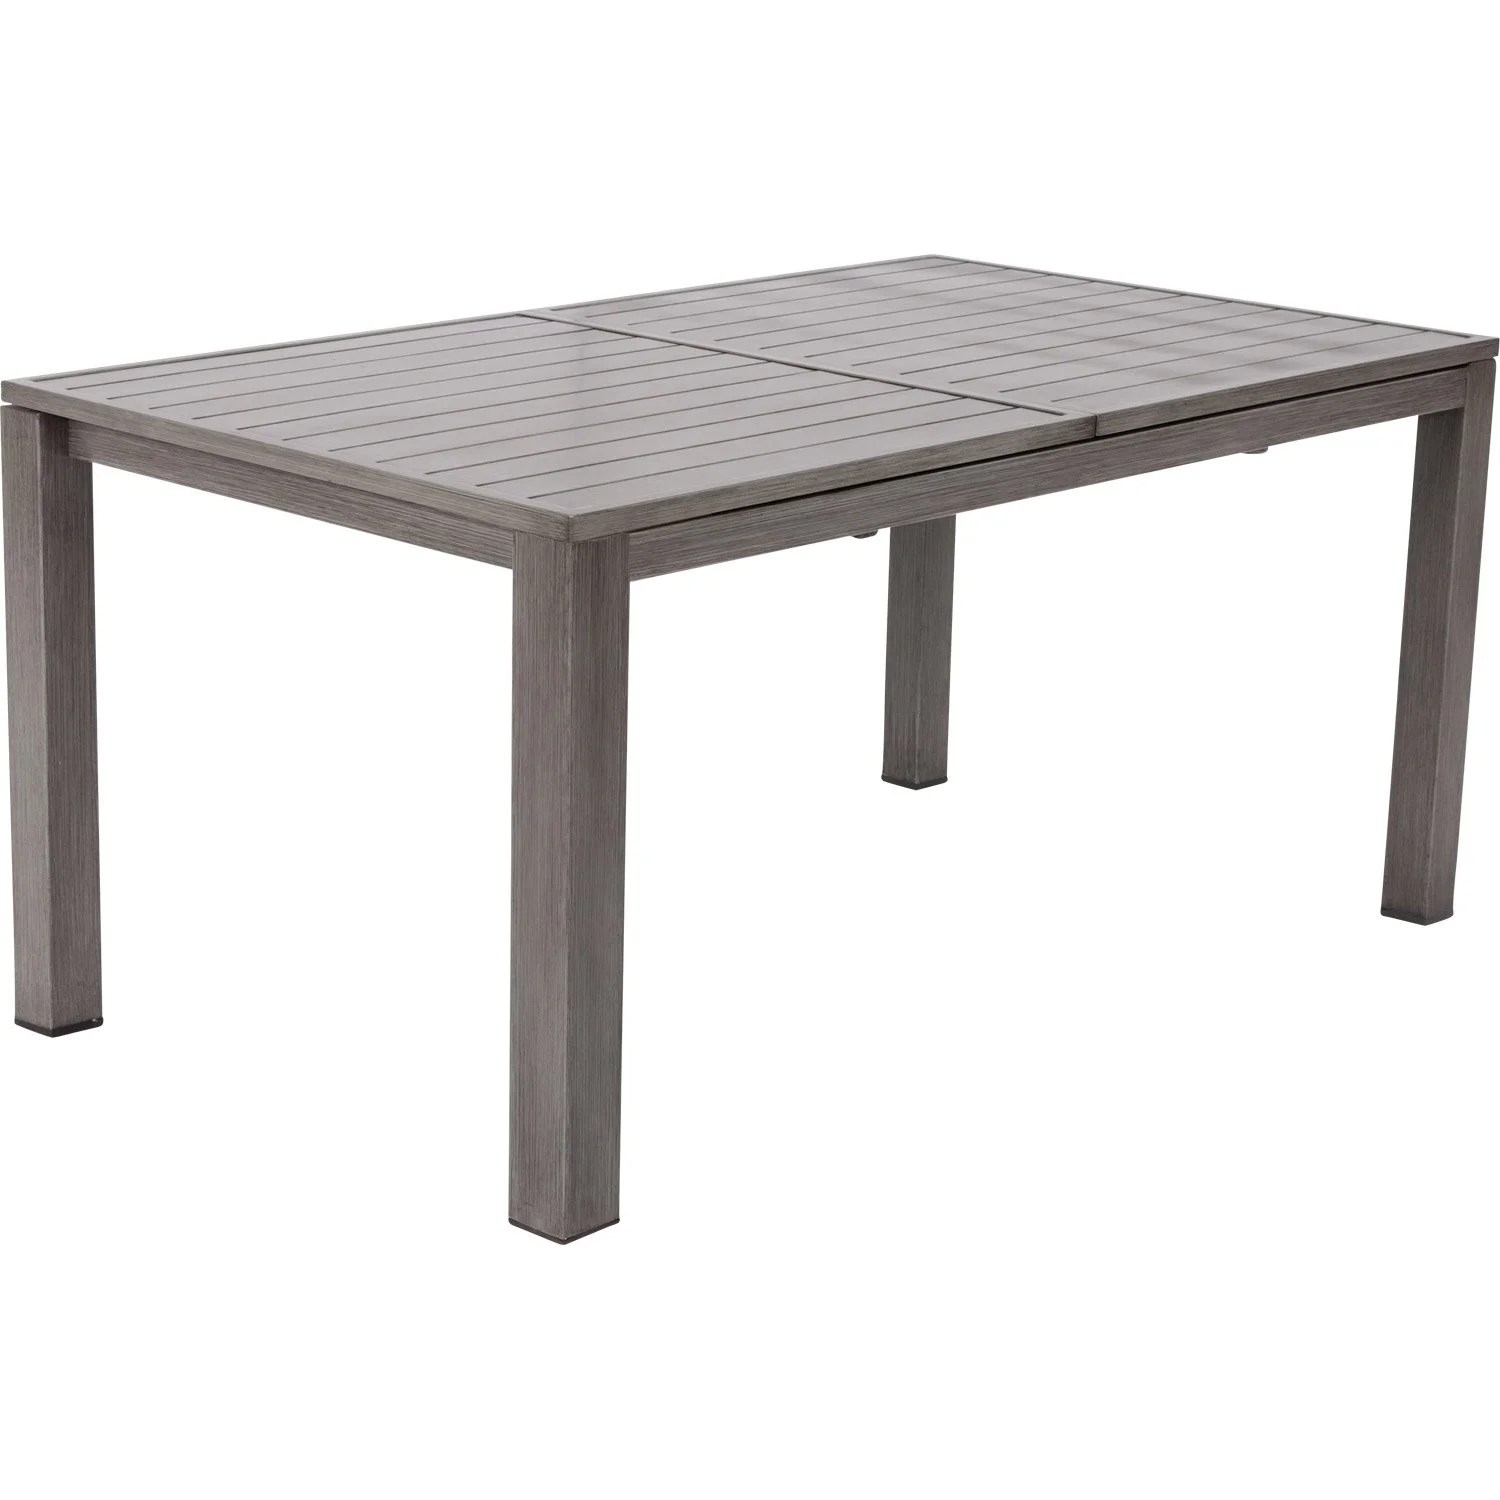 Leroy Merlin Table De Jardin Table De Jardin Naterial Antibes Rectangulaire Gris Look